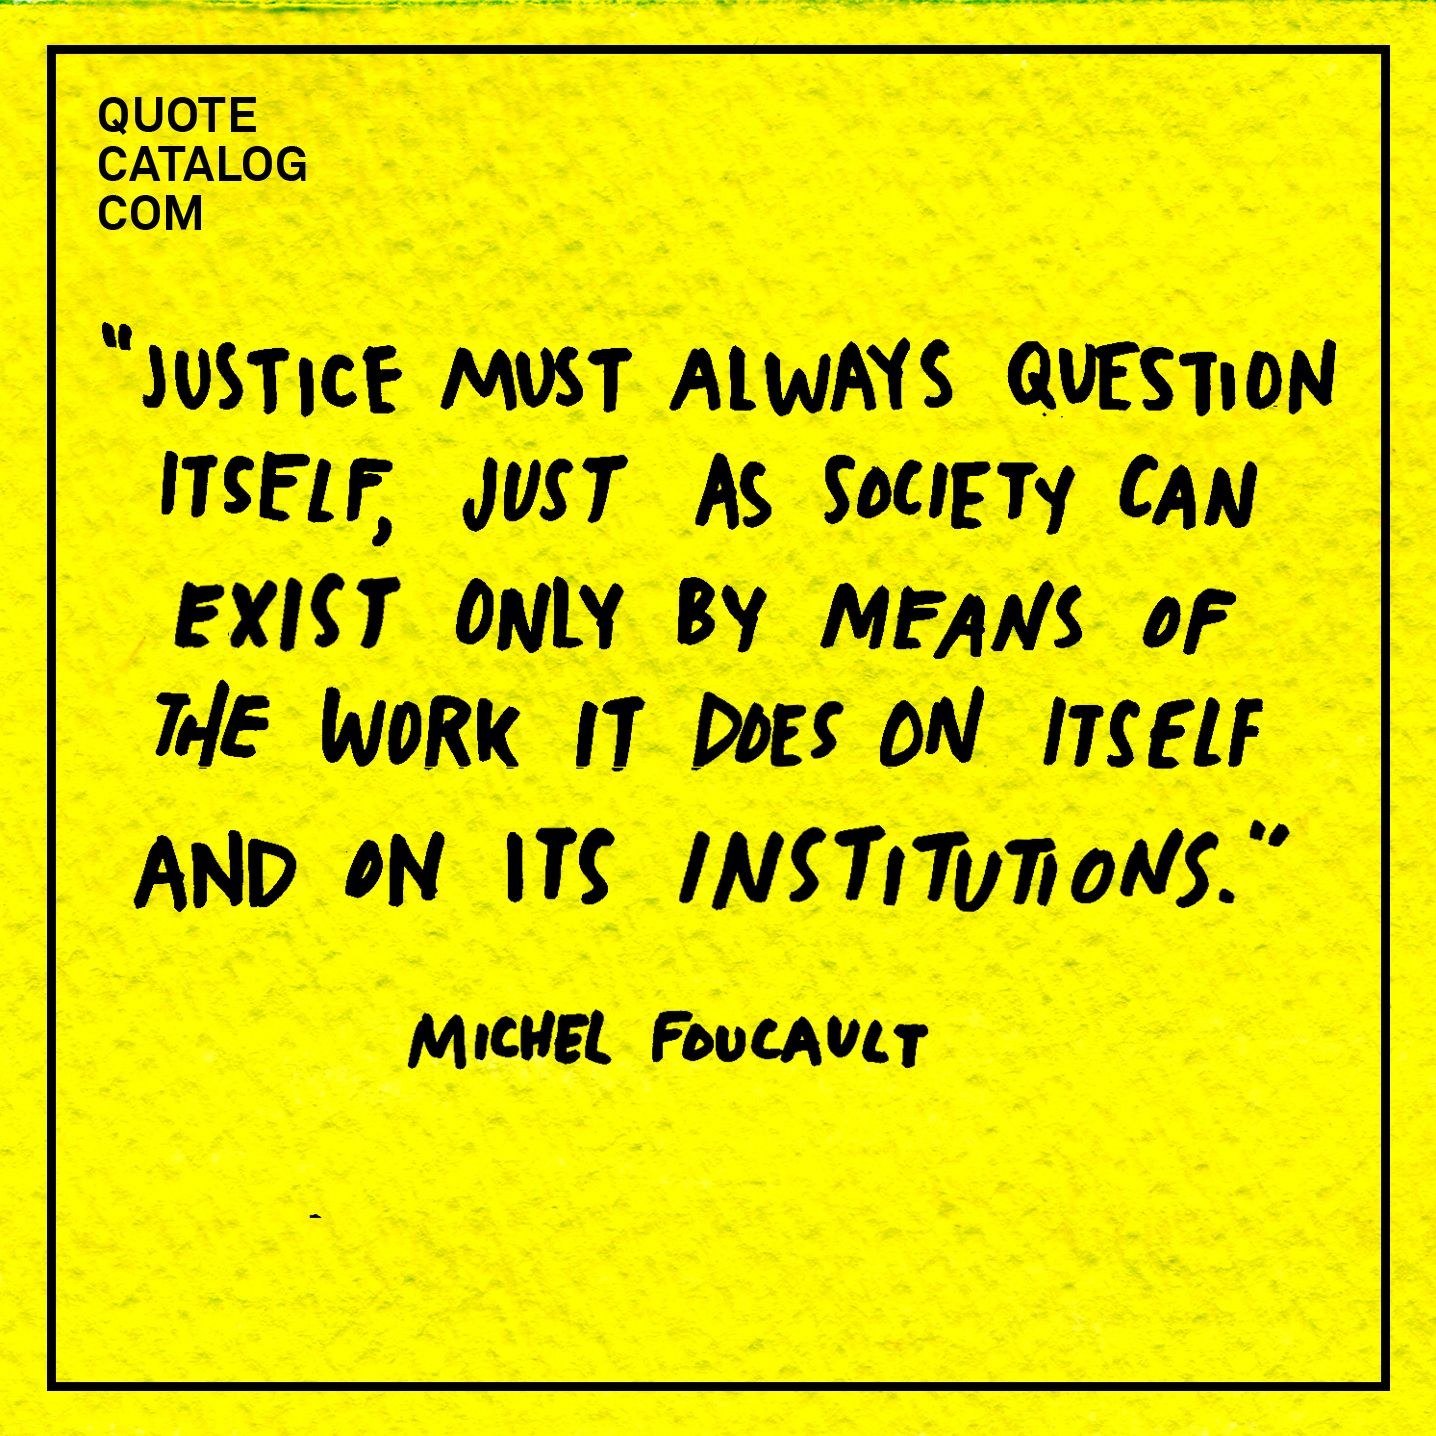 Justice must always question itself, just as society can